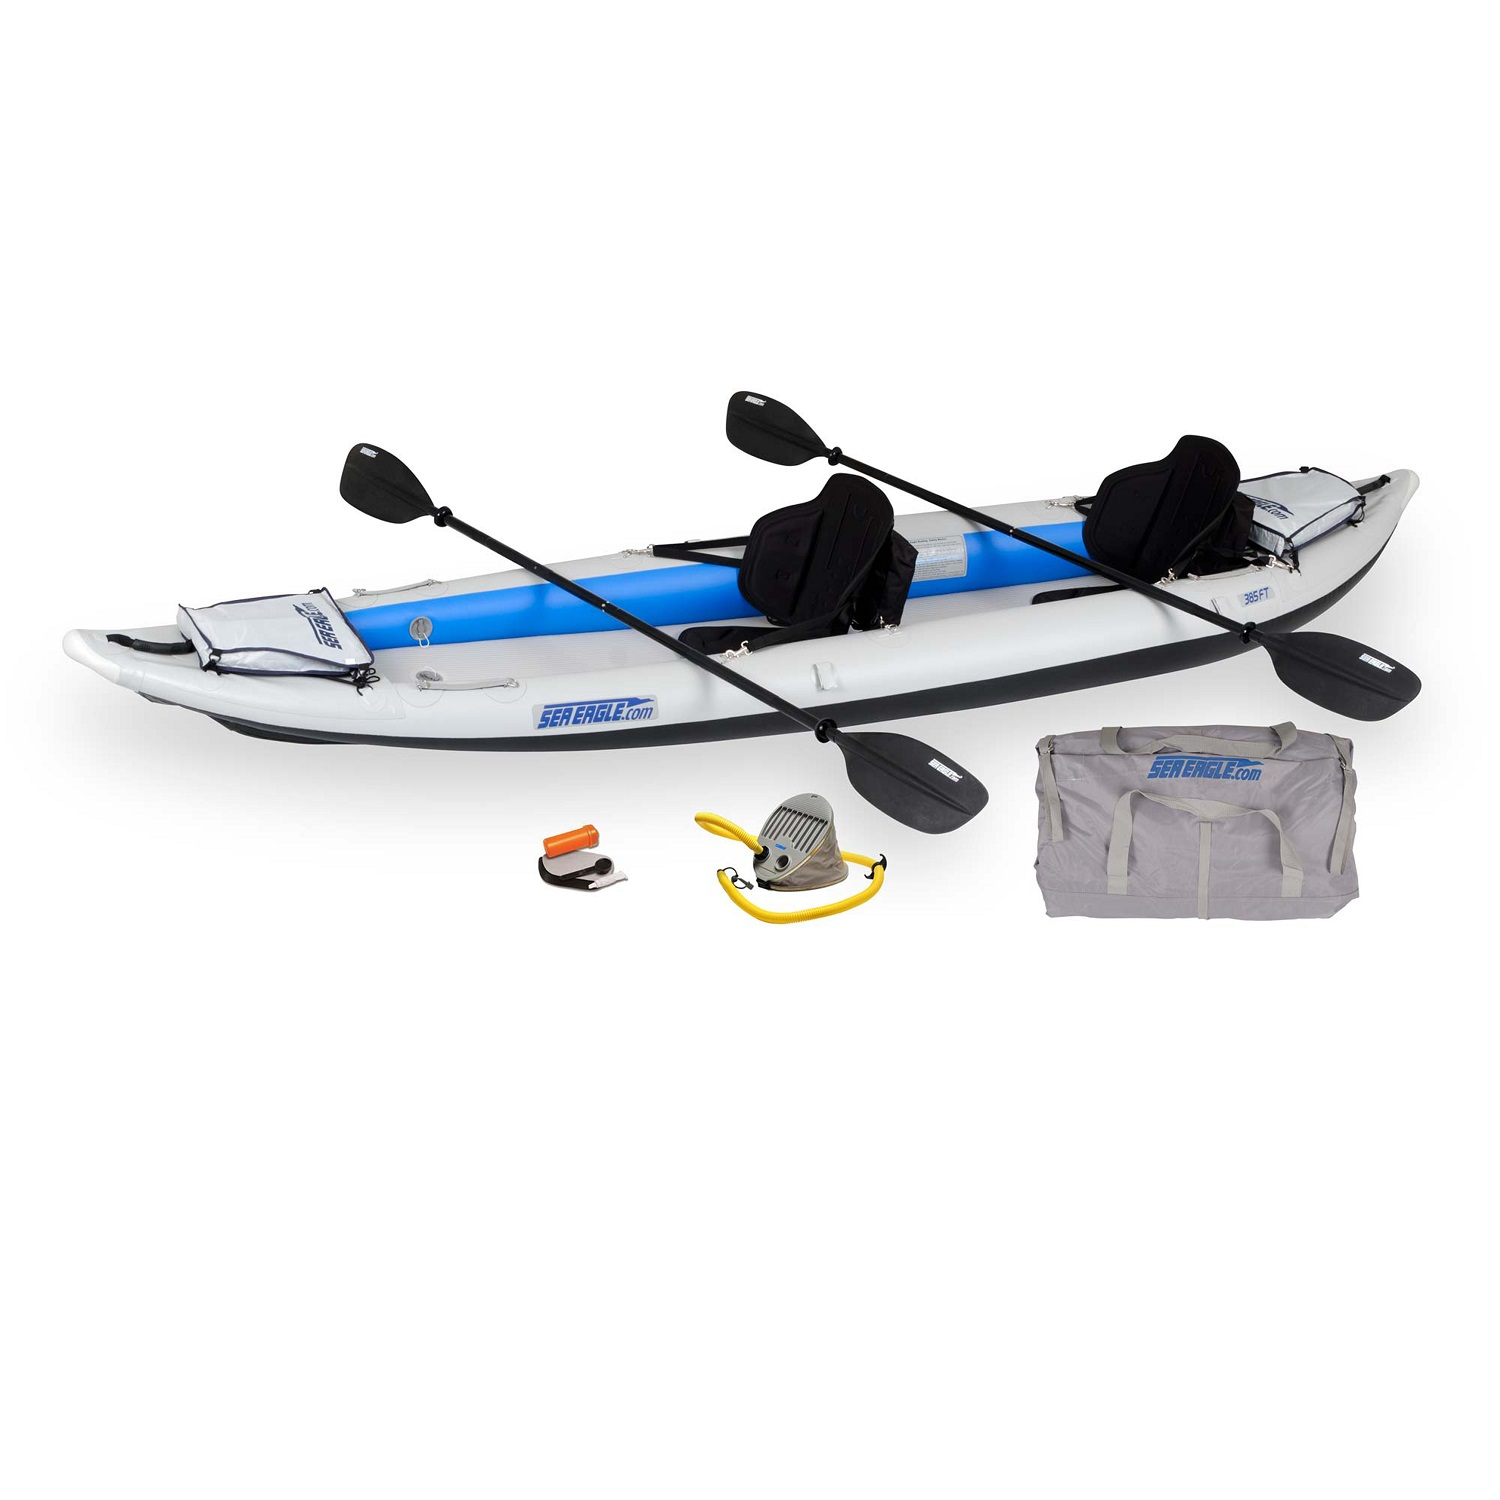 Sea Eagle FastTrack 385FTK Inflatable Kayak Pro by Sea Eagle